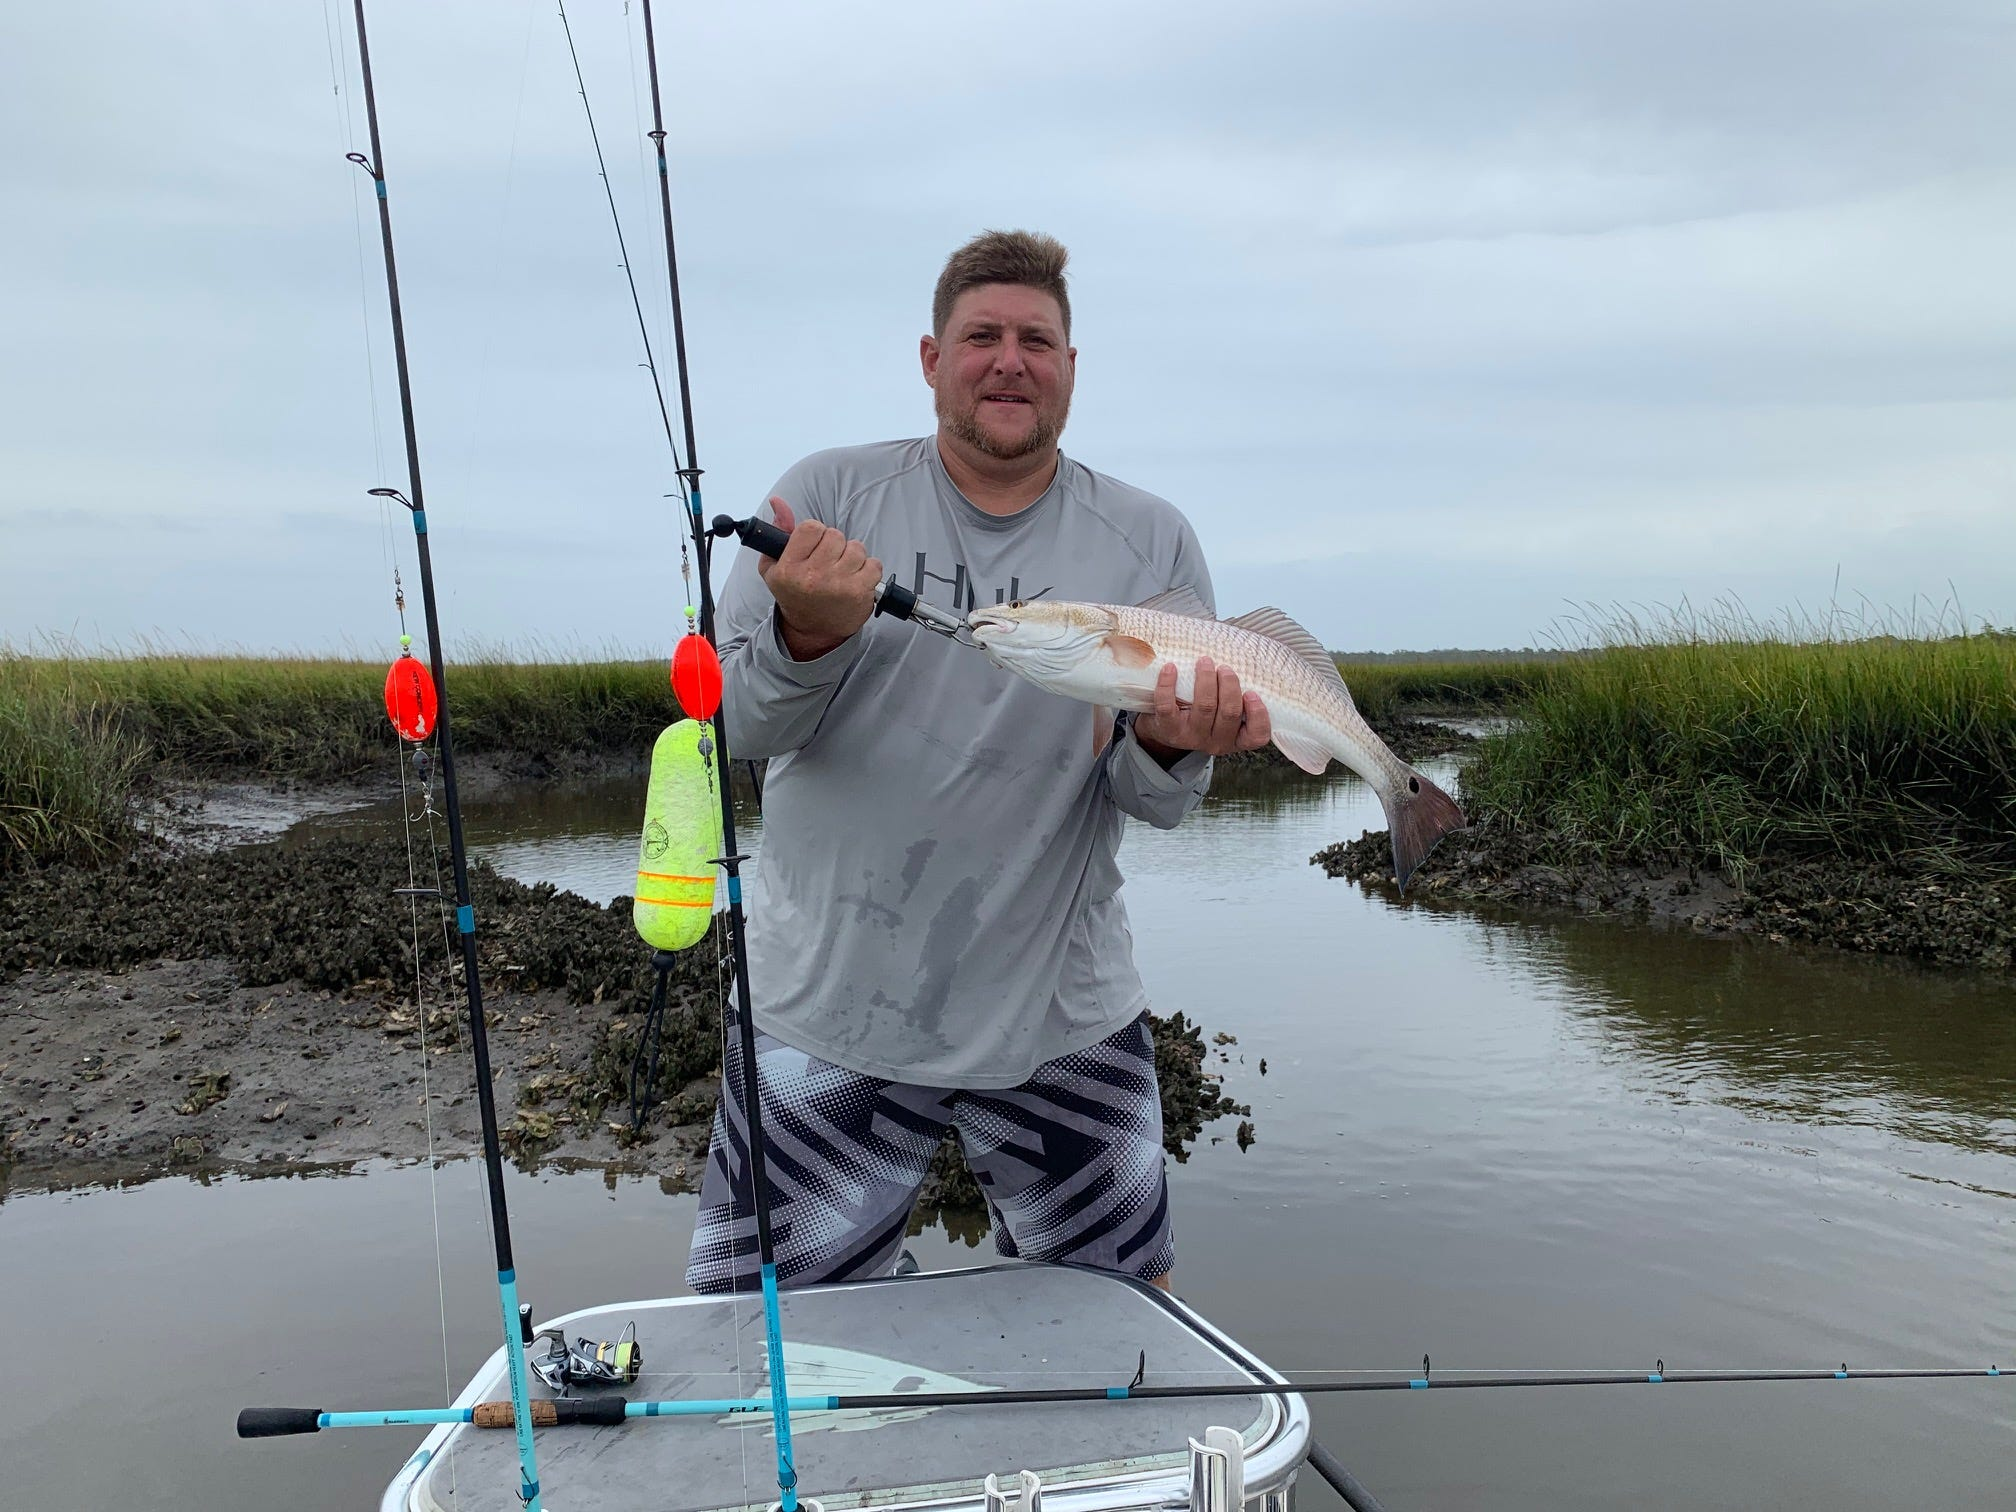 Jim Sutton says dropping temps good sign for fishing